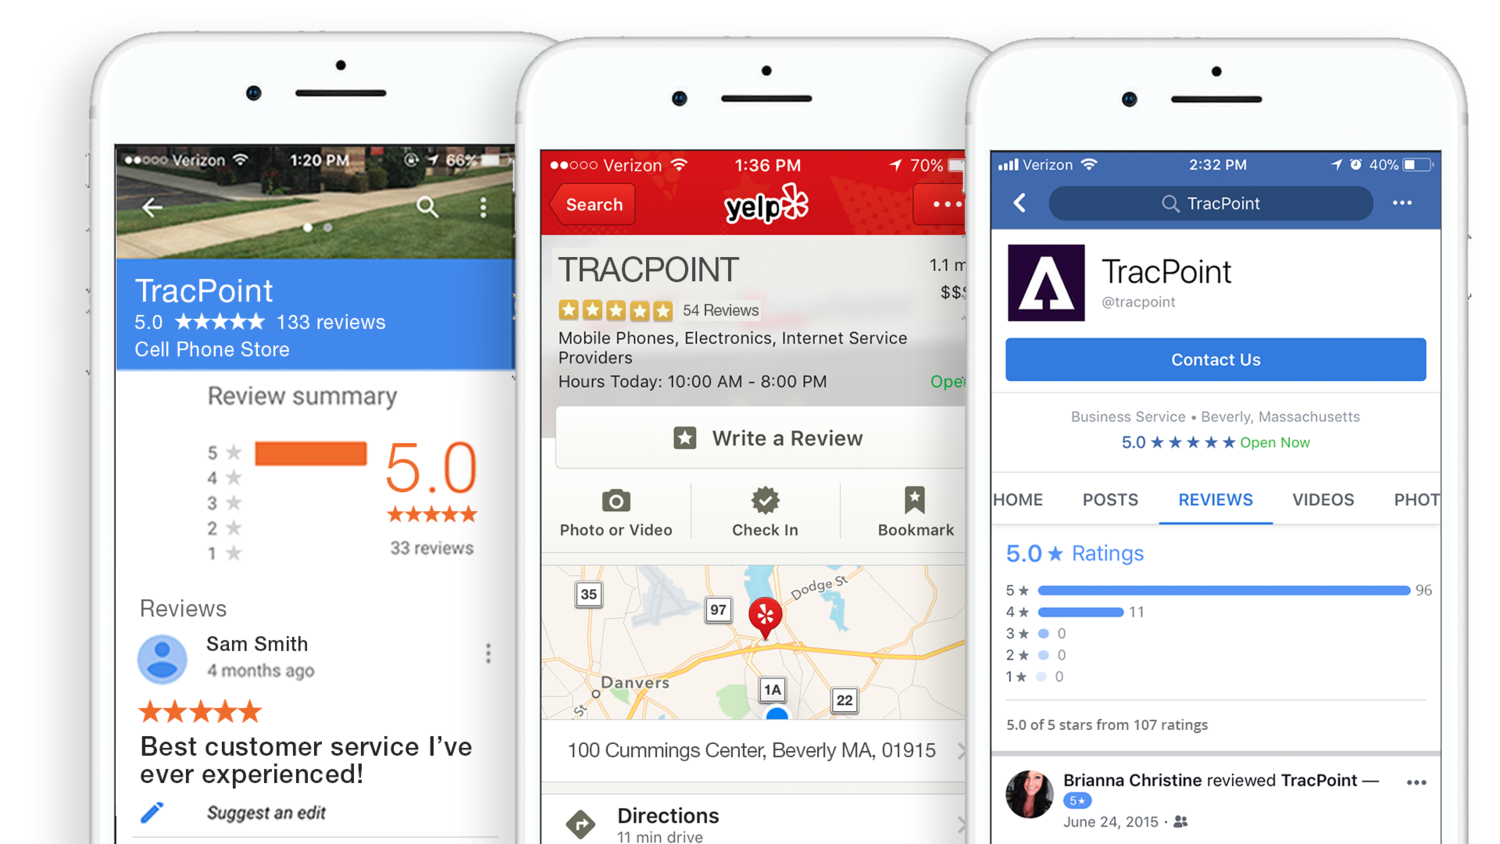 Reviews Generator — TracPoint